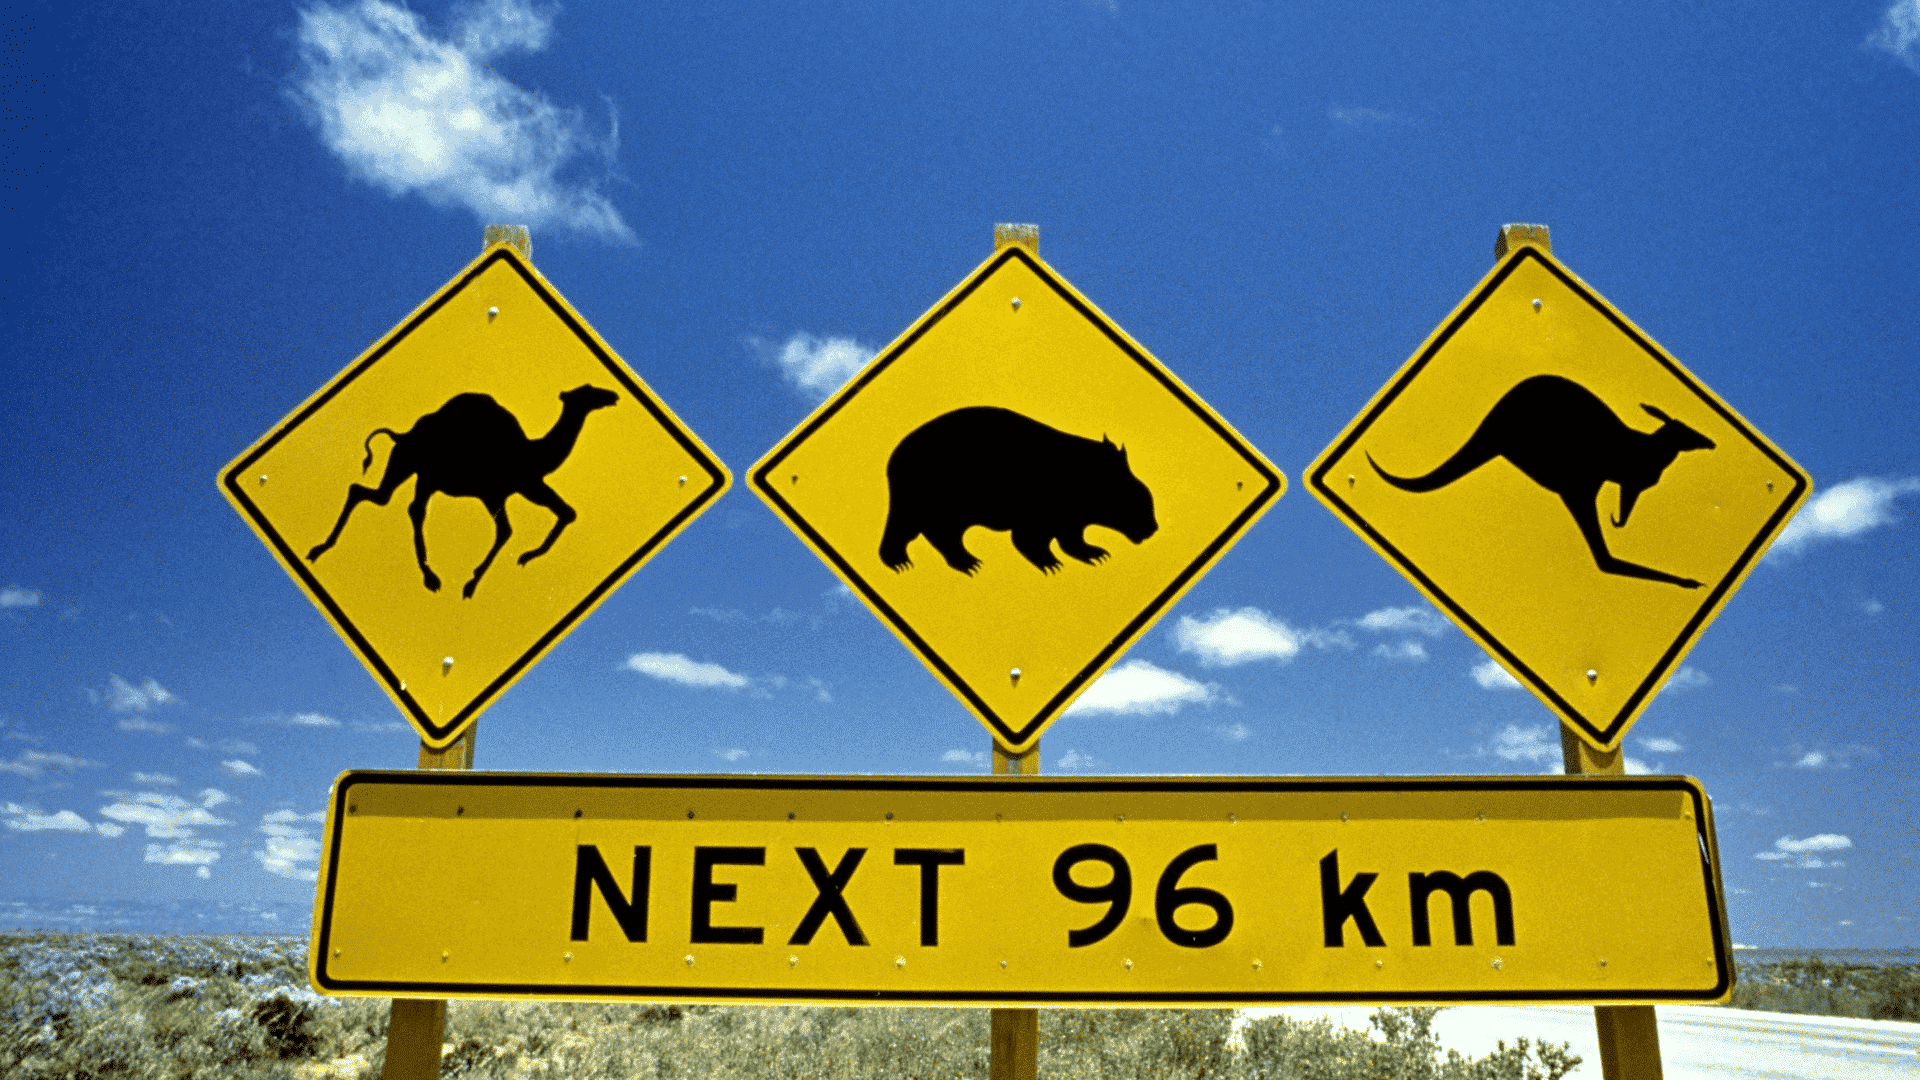 Image of road signs in Australia with different animals on